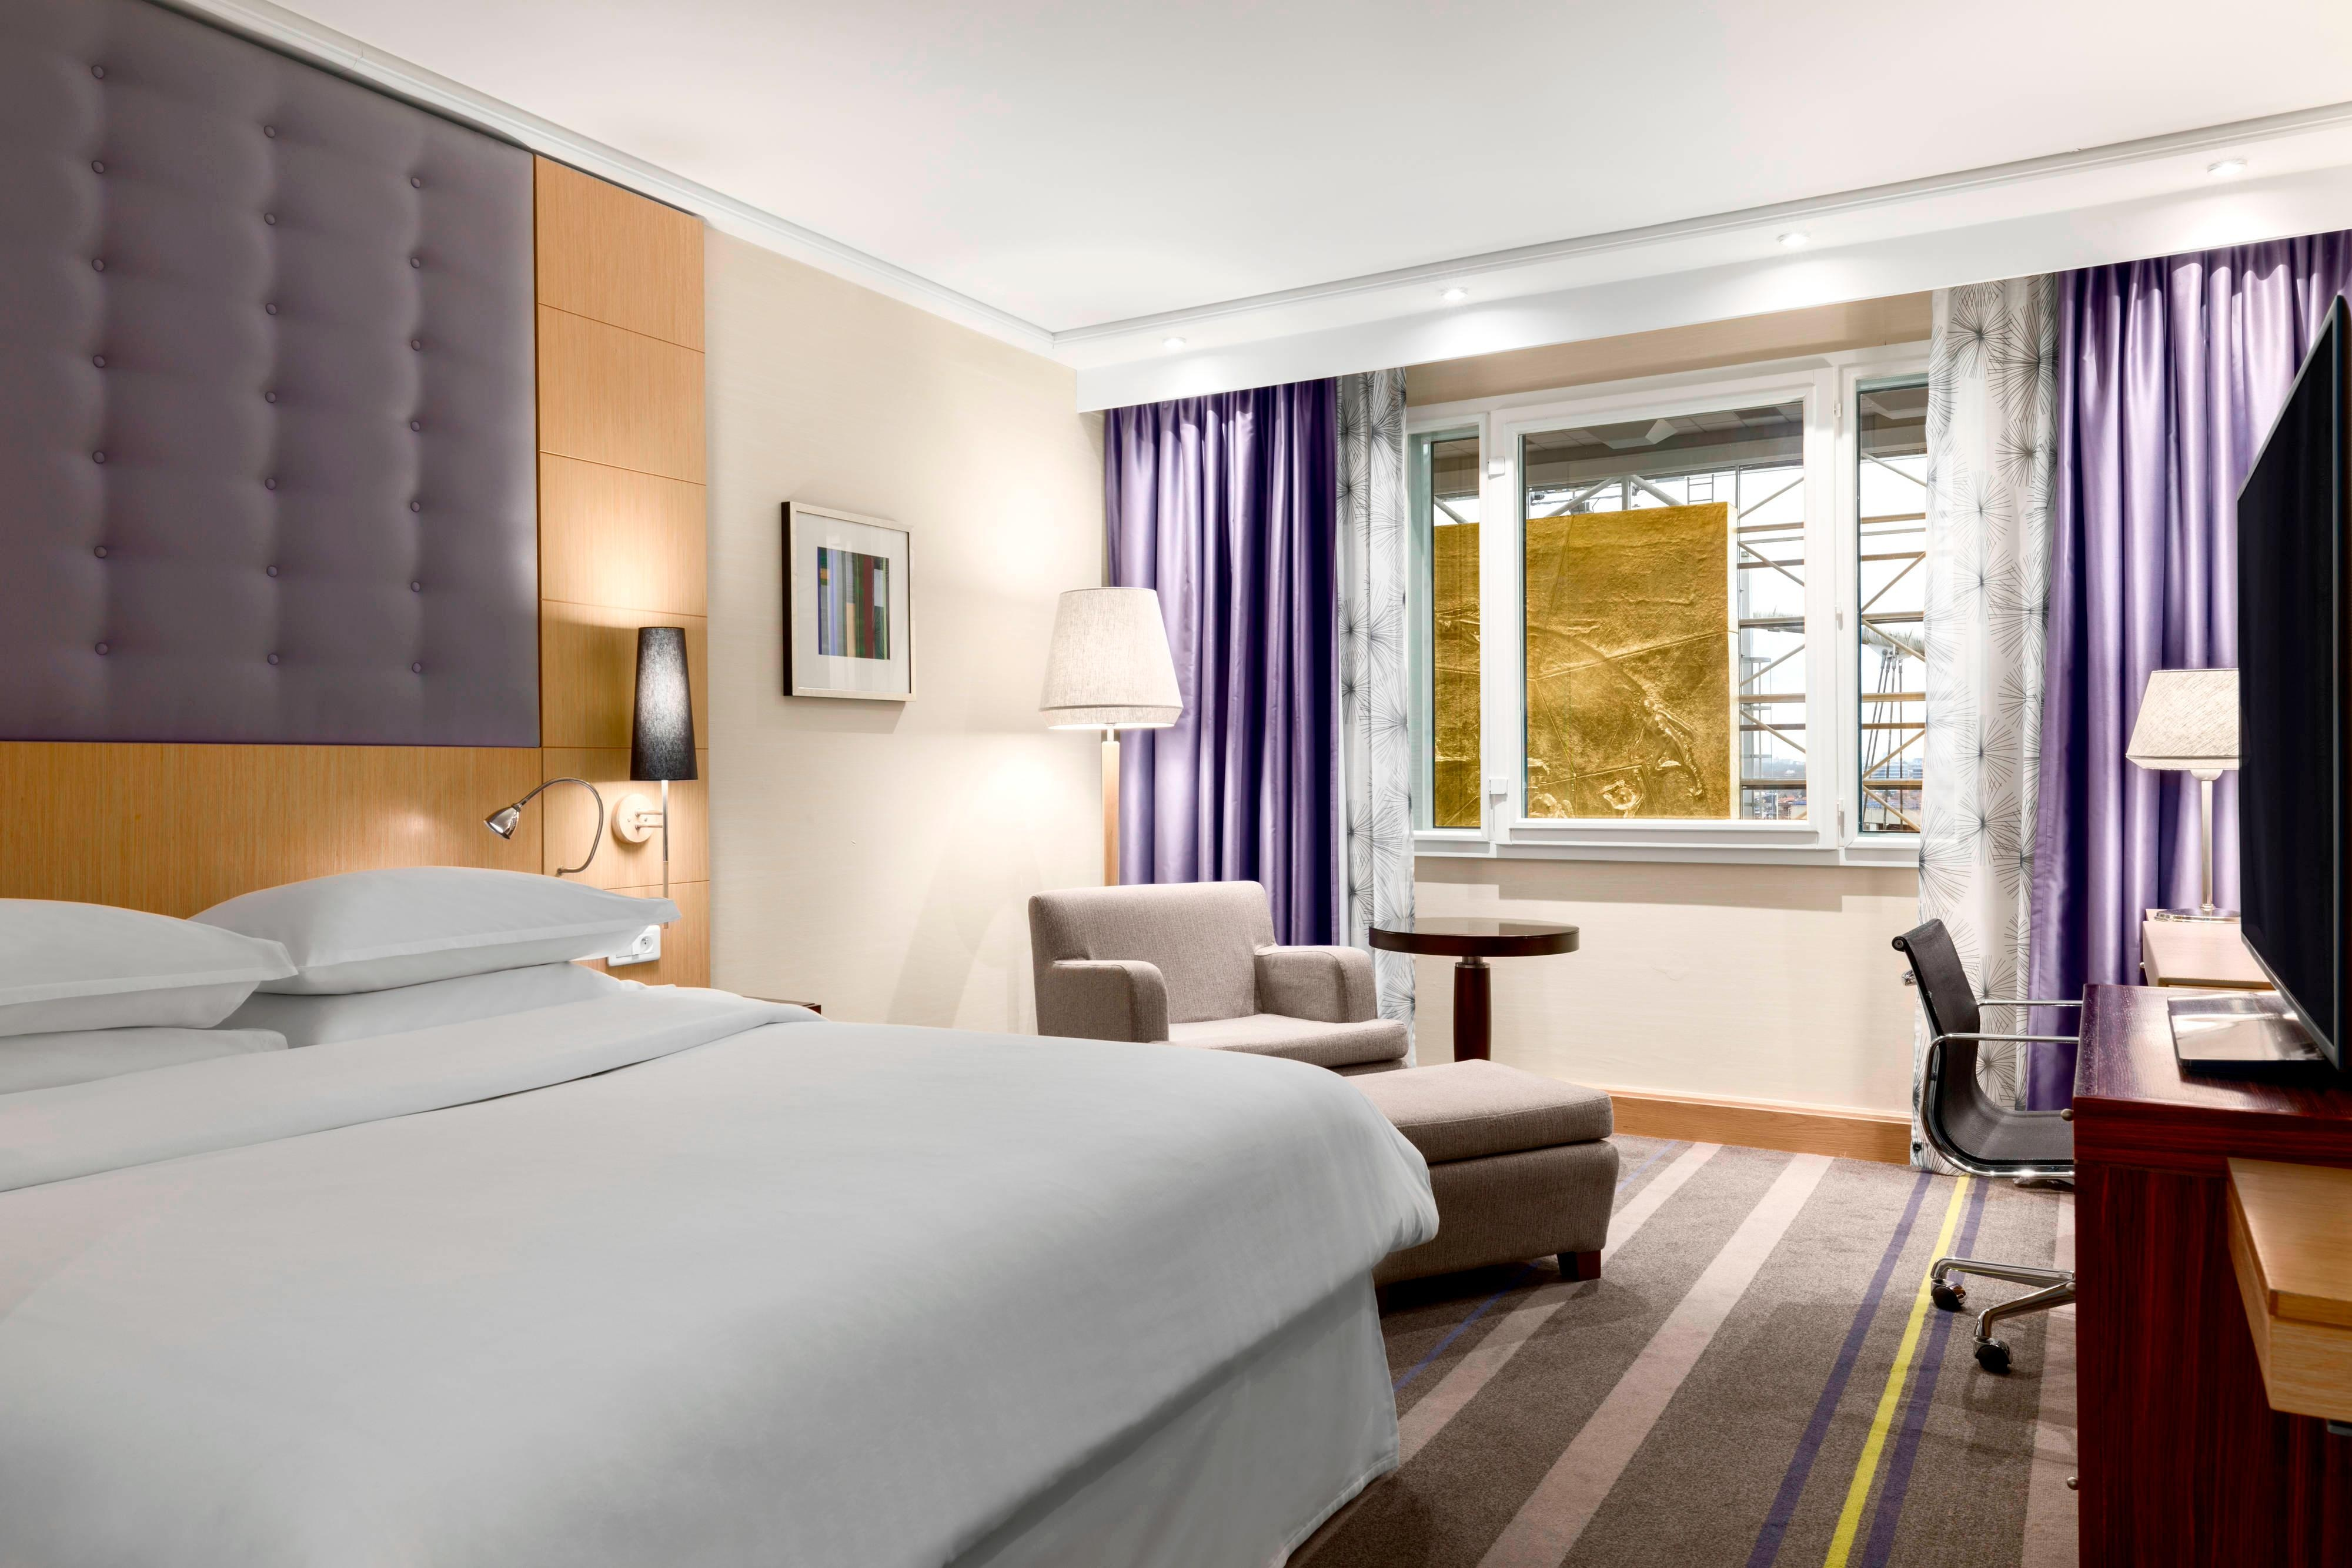 Sheraton brussels airport hotel bruxelles marriott bonvoy